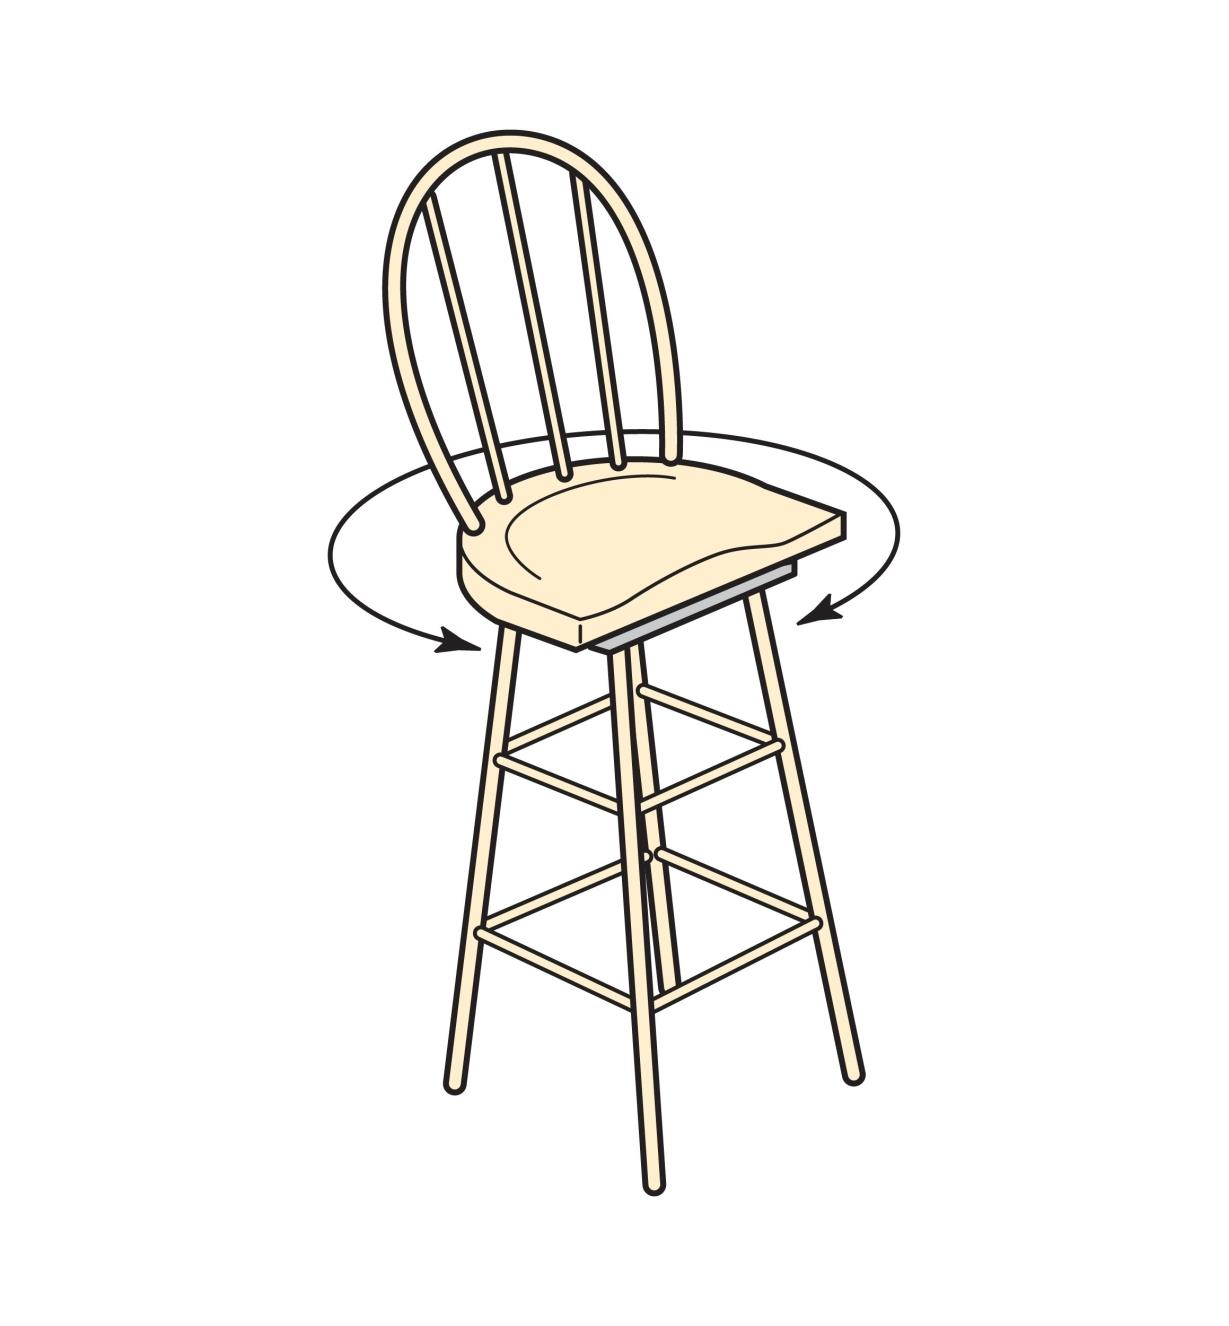 Illustration of a chair made with a seat swivel